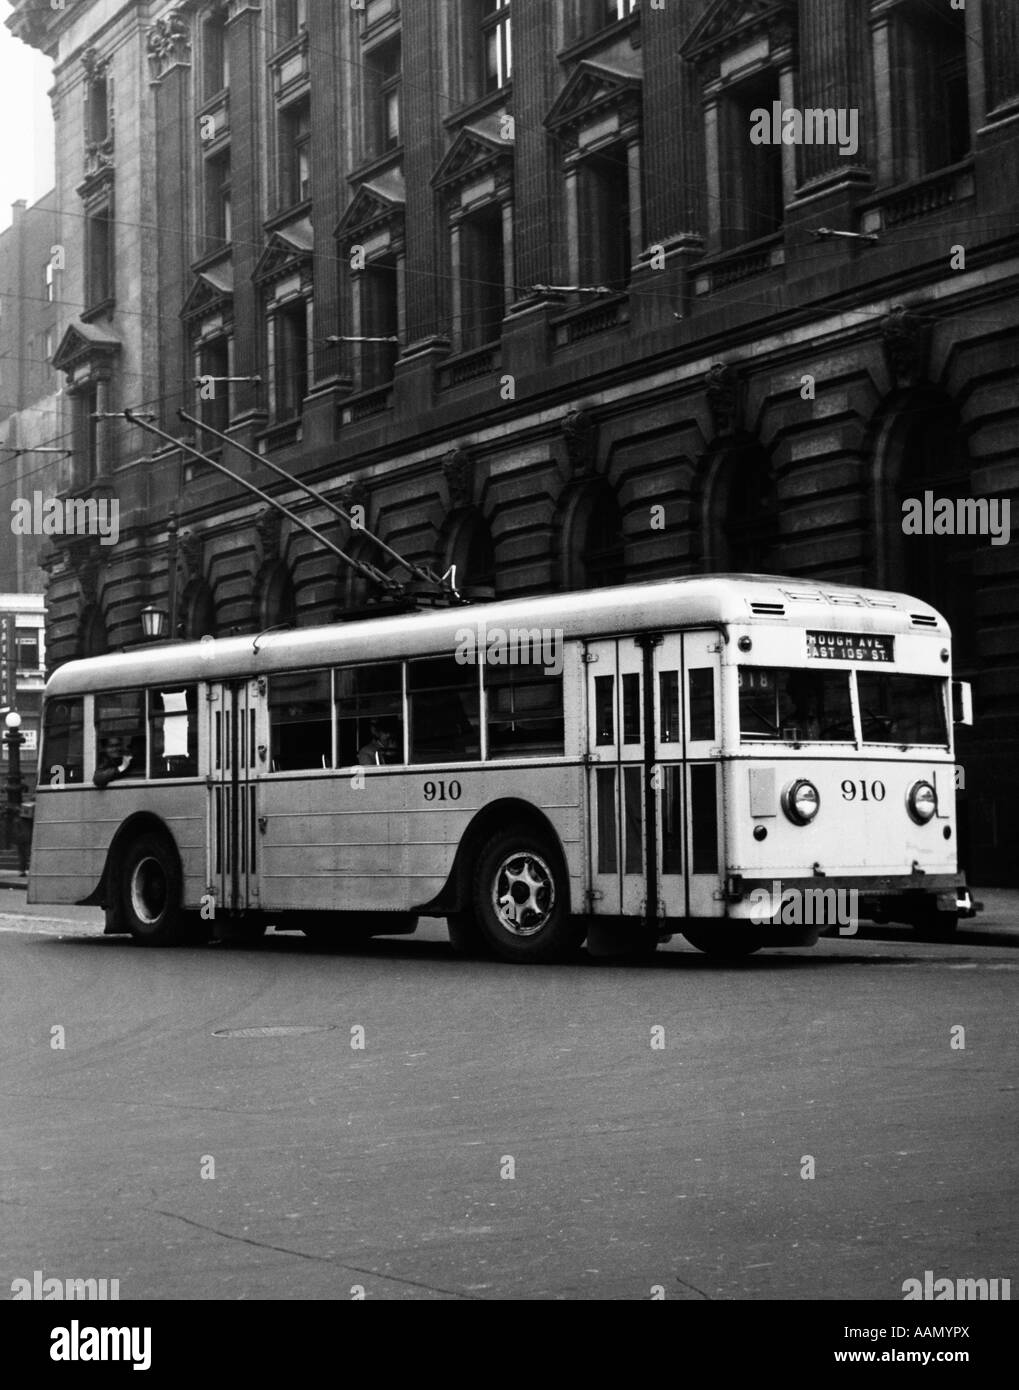 1930s 1940s TRACKLESS TROLLEY ELECTRIC BUS ABOUT TO ROUND CURVE PUBLIC TRANSPORTATION CLEVELAND OHIO USA - Stock Image